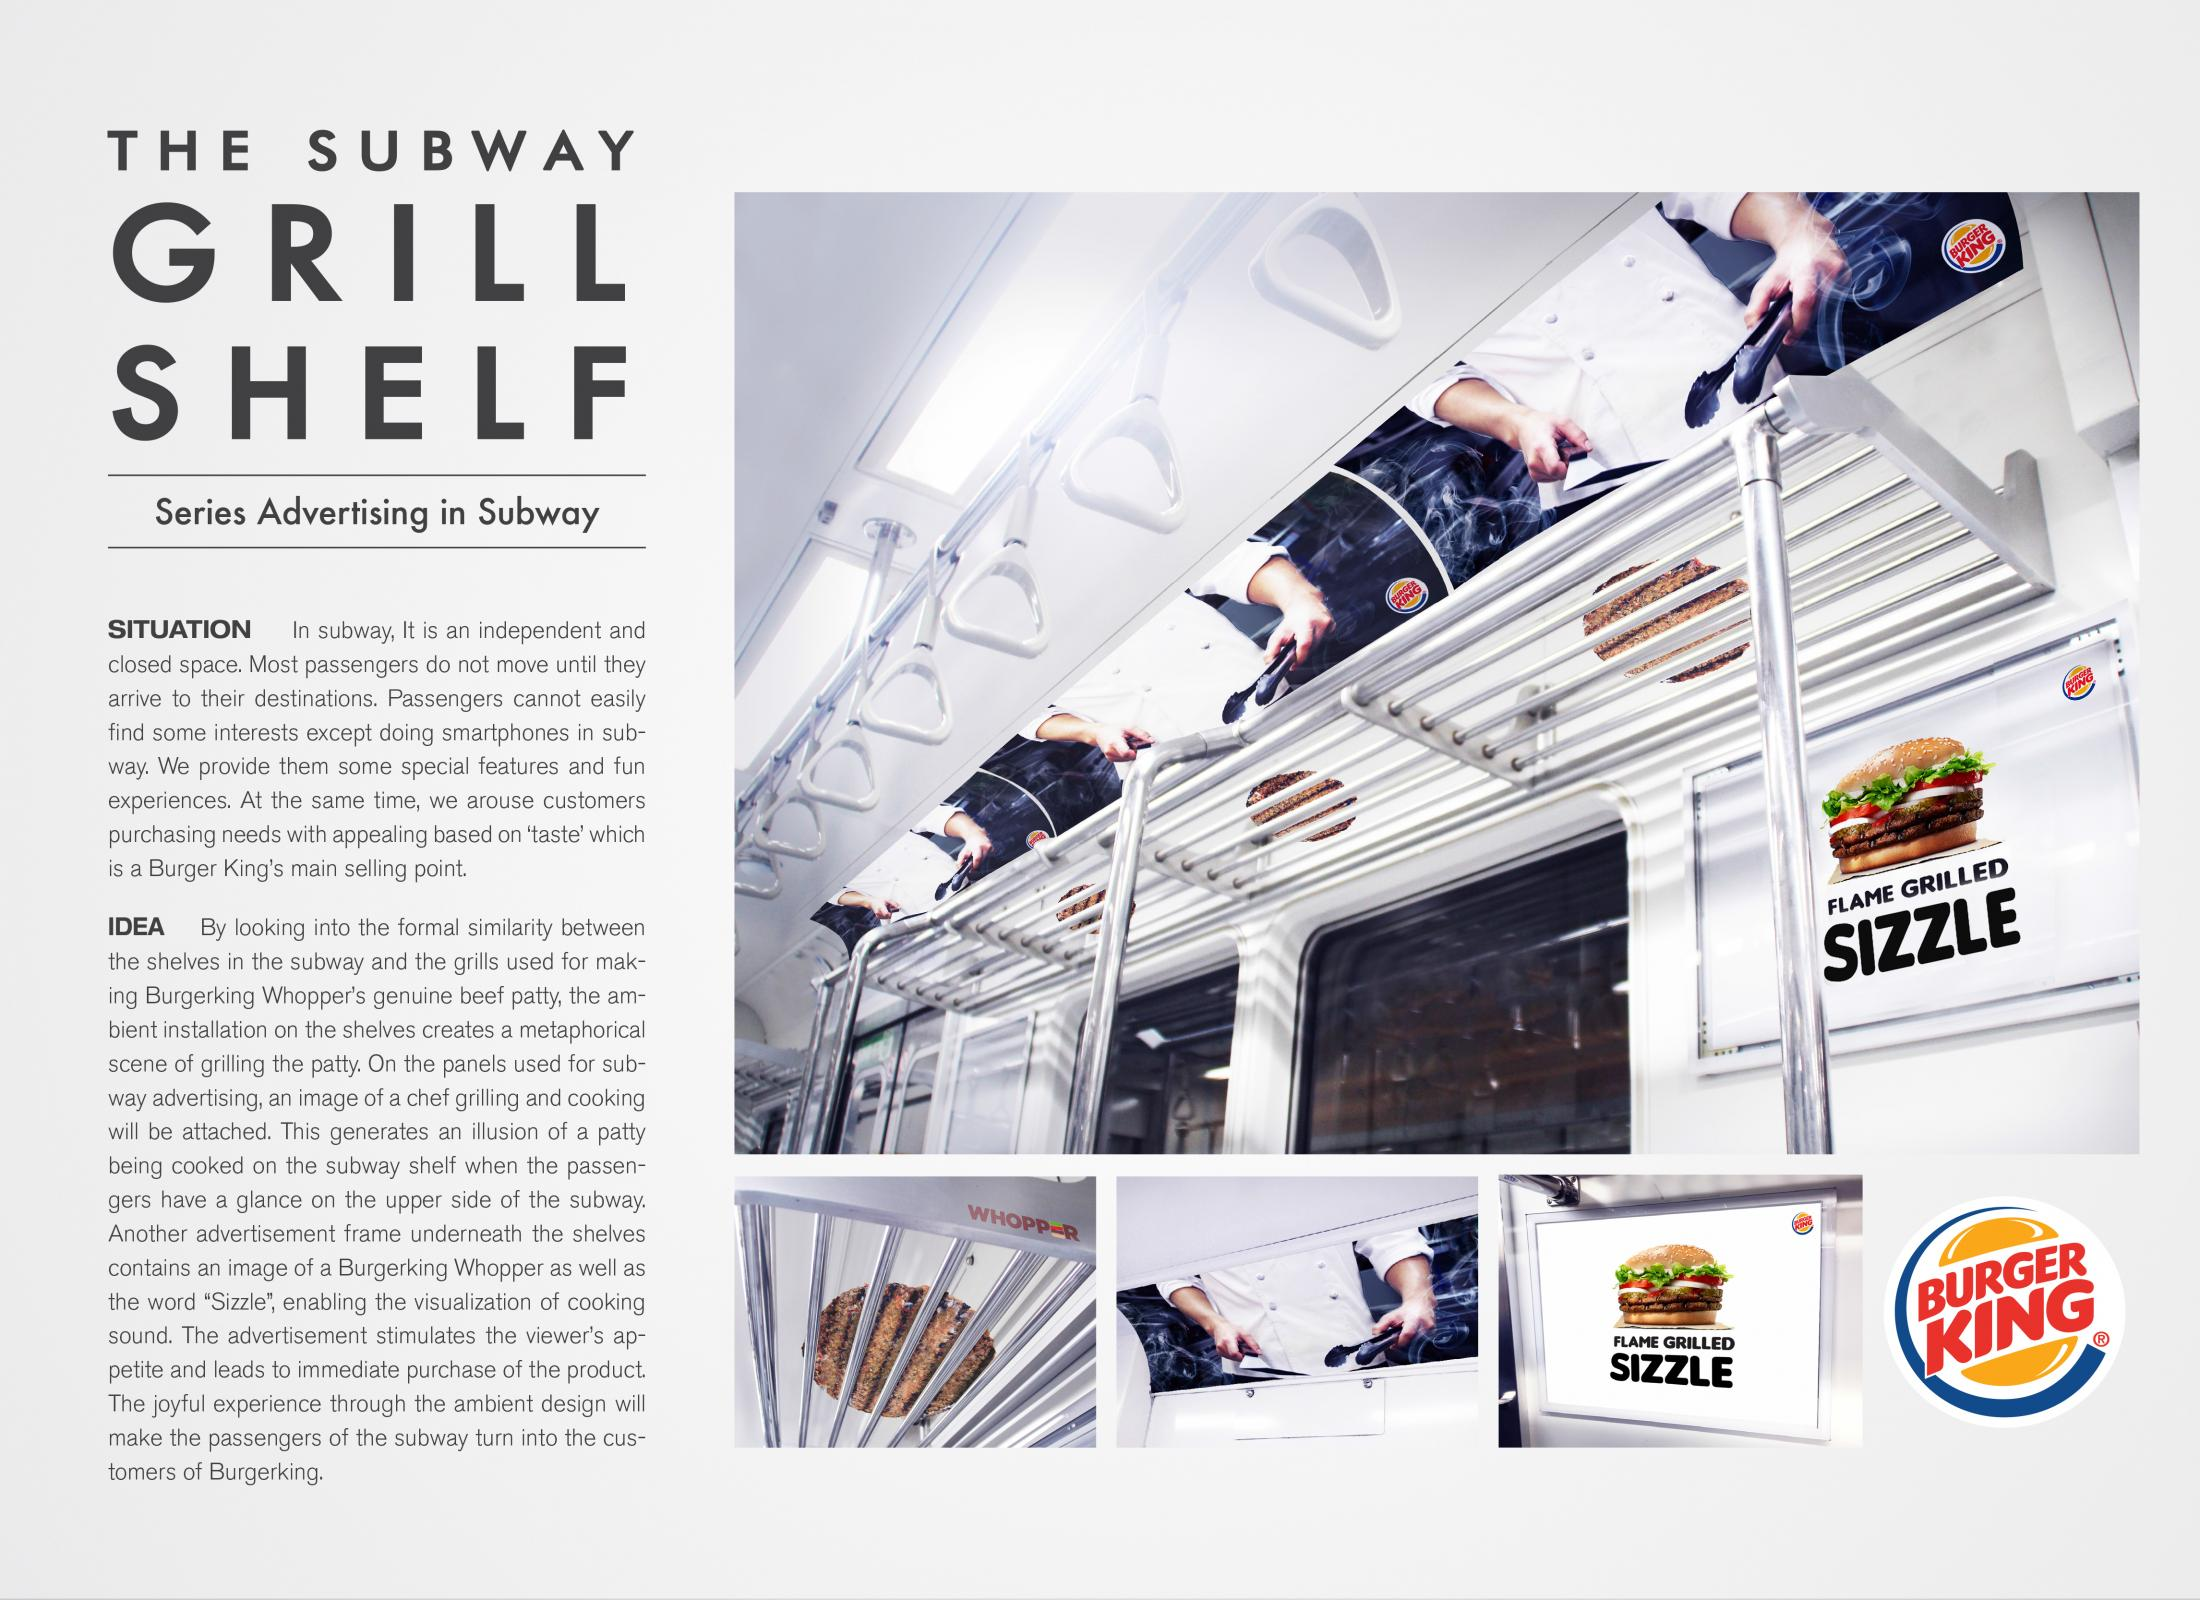 Thumbnail for THE SUBWAY GRILL SHELF